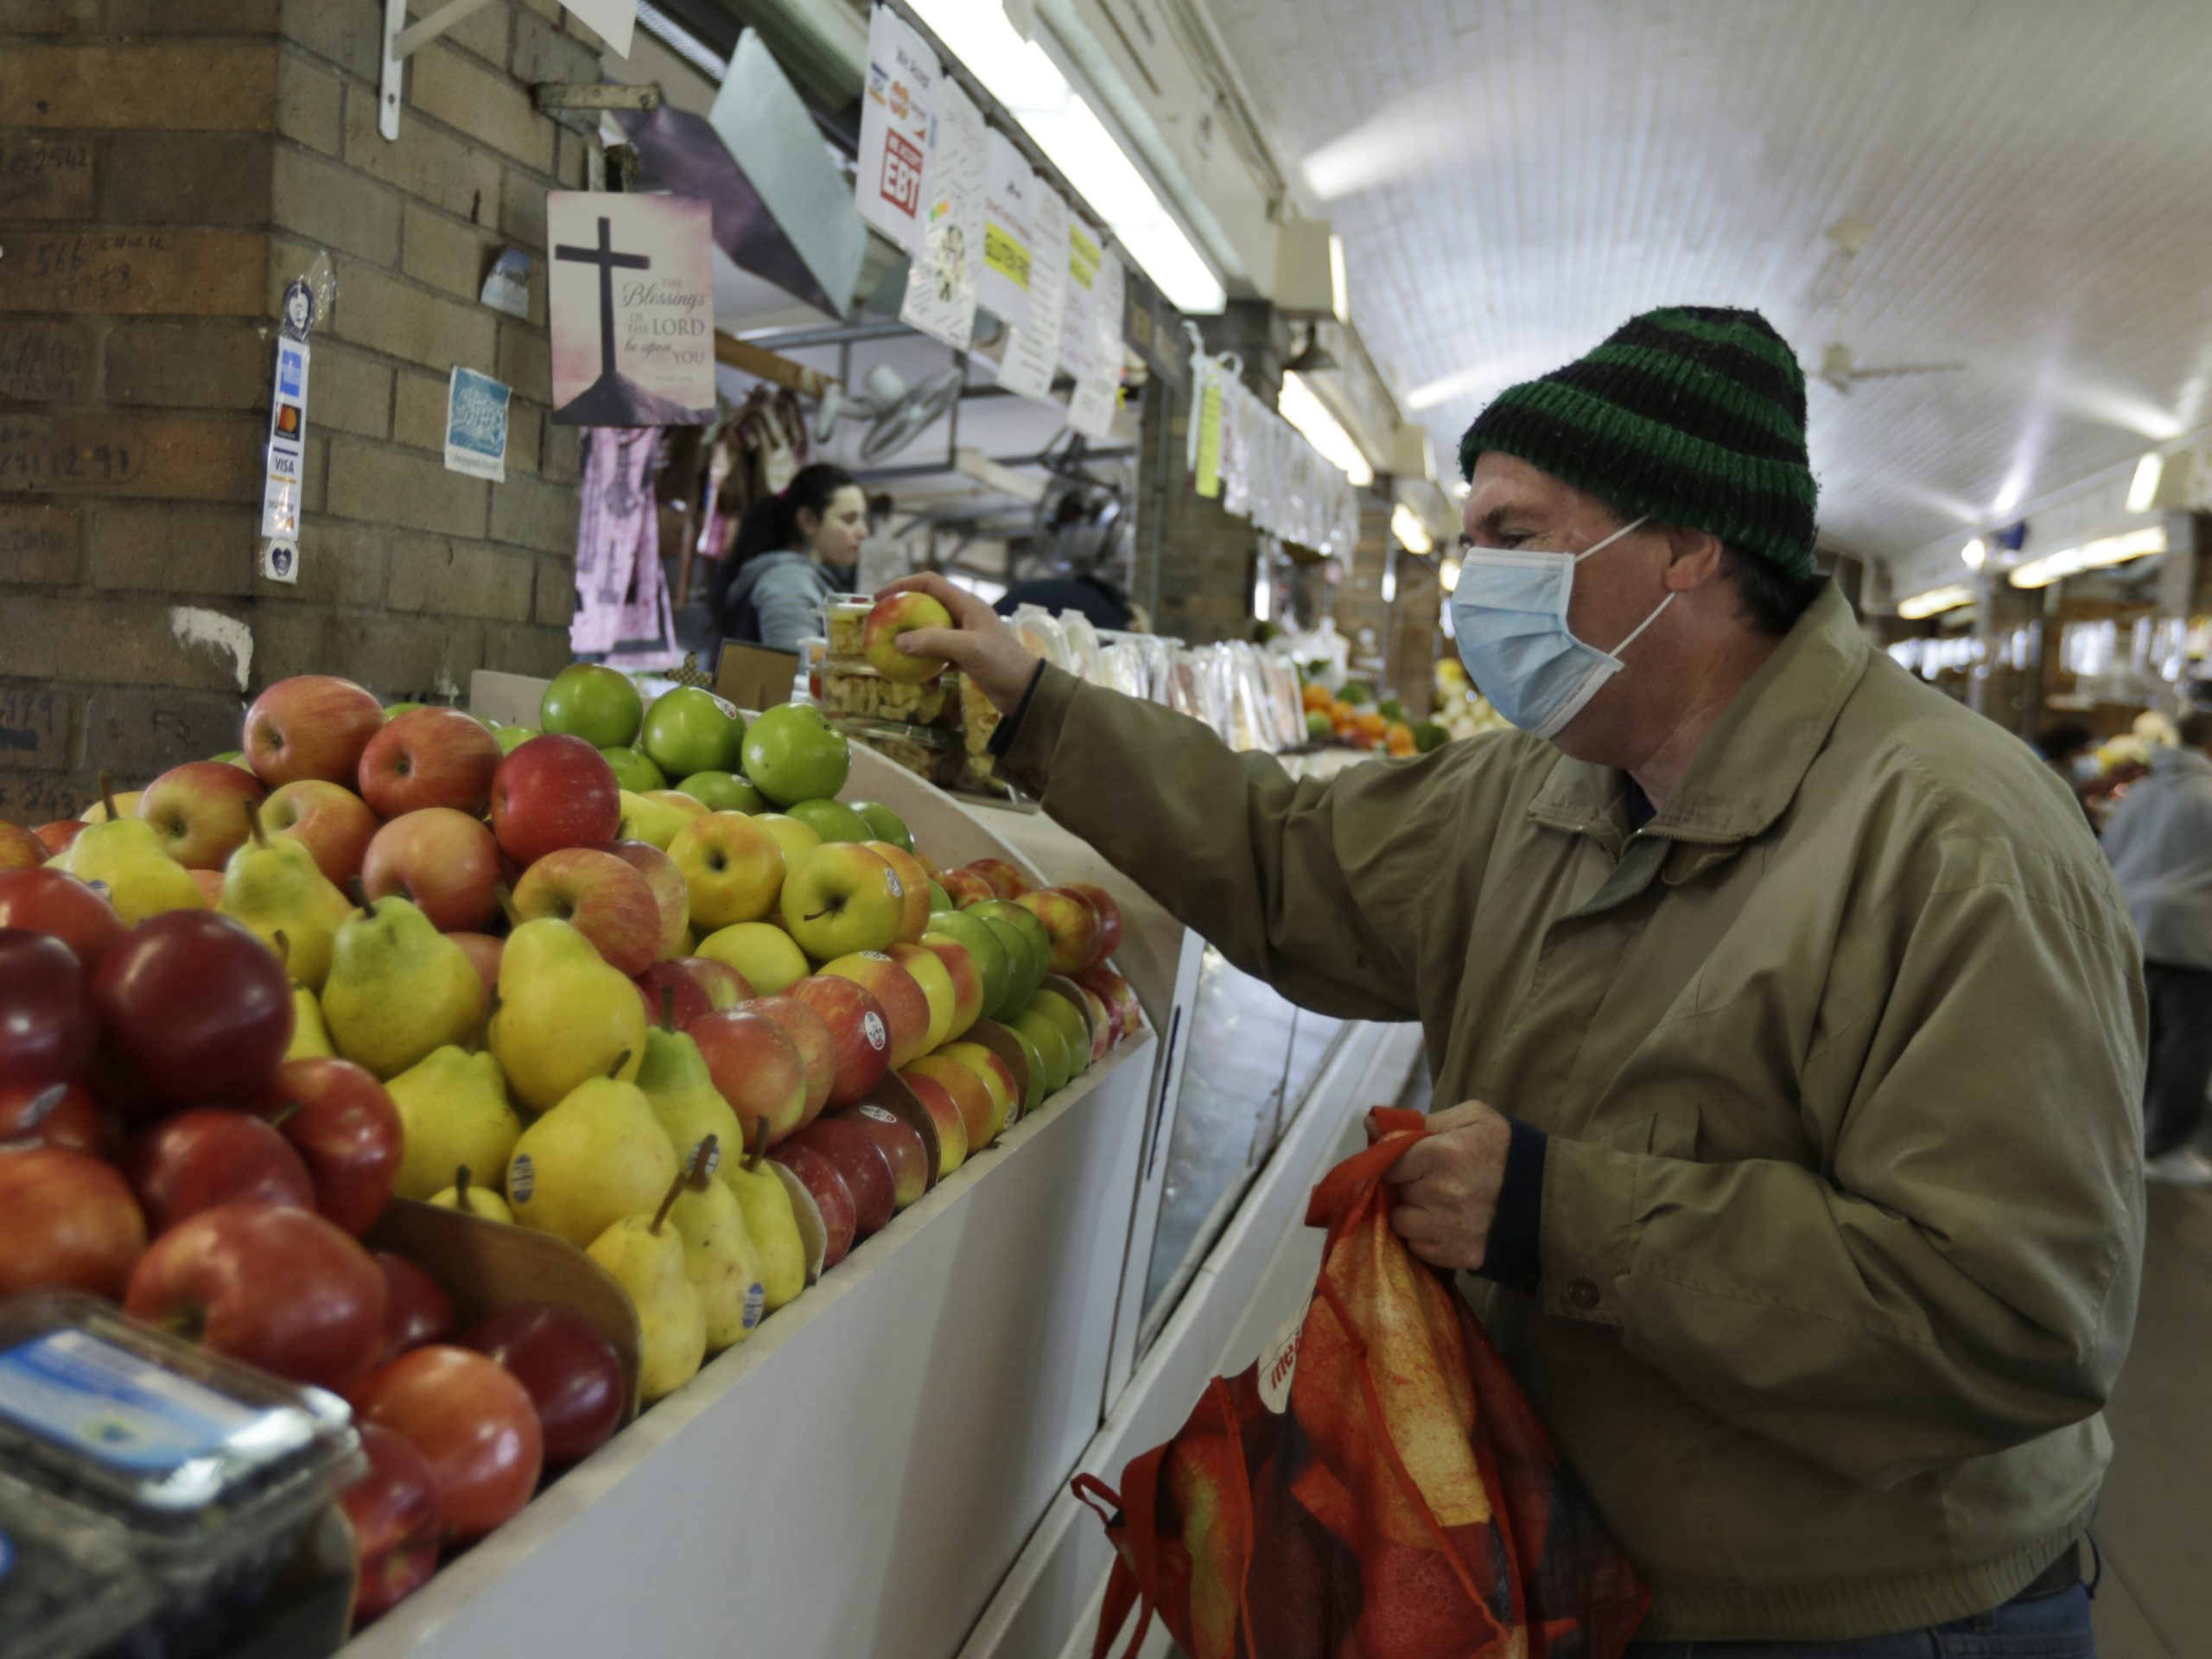 Rick Wittenmyer shops for groceries at the West Side Market, Friday, April 10, 2020, in Cleveland. There were fewer shoppers this year before the Easter holiday than in previous years due to the coronavirus.